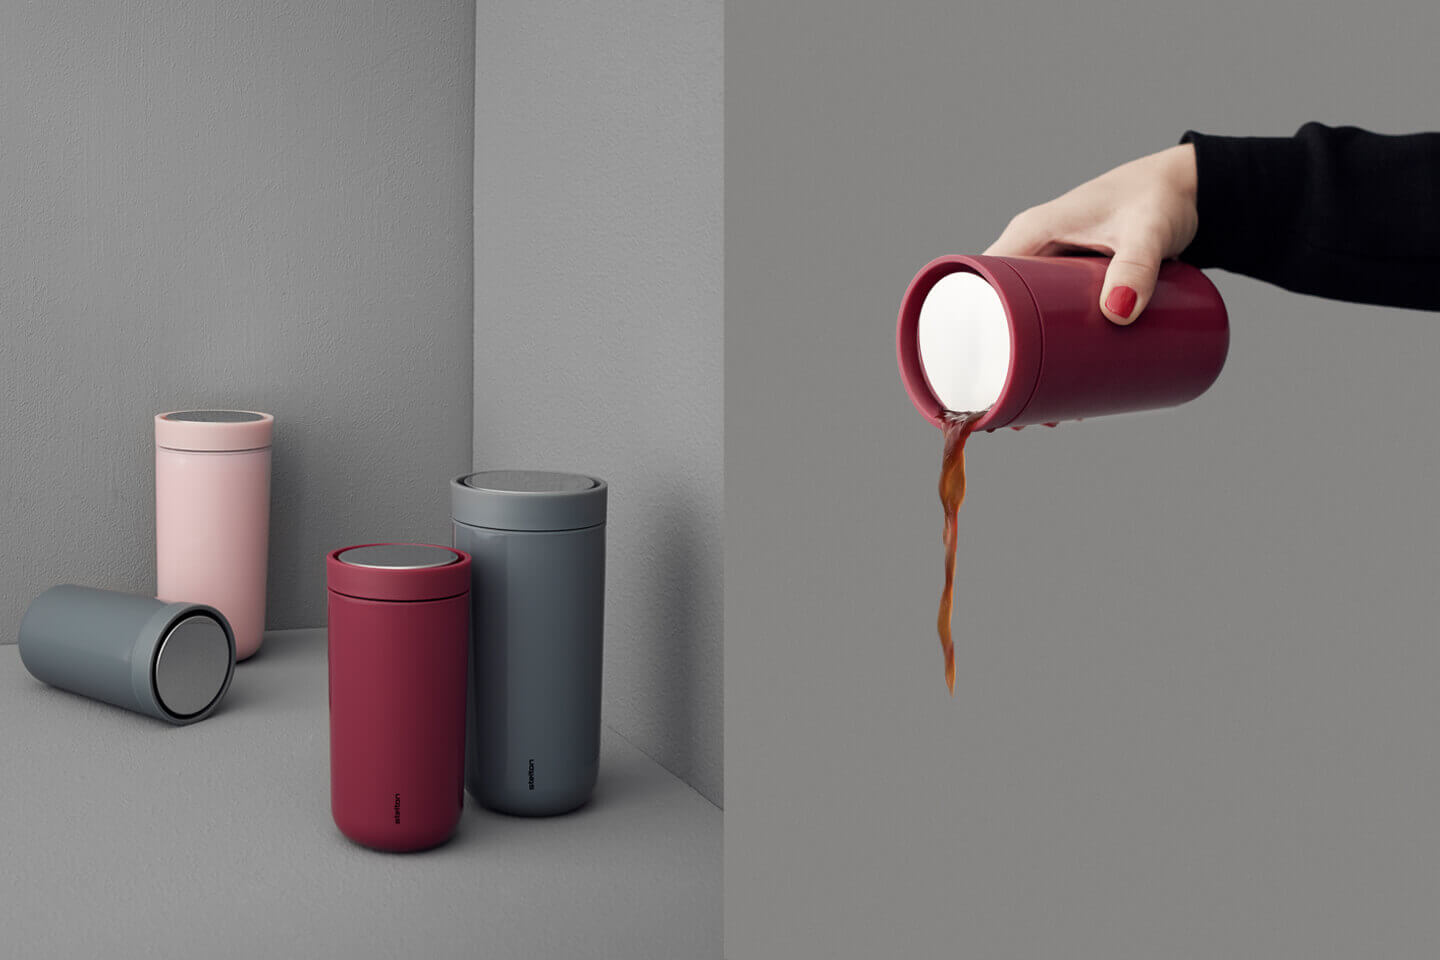 coffee-to-go-cups-gift-for-coffee-addicts-03@1x